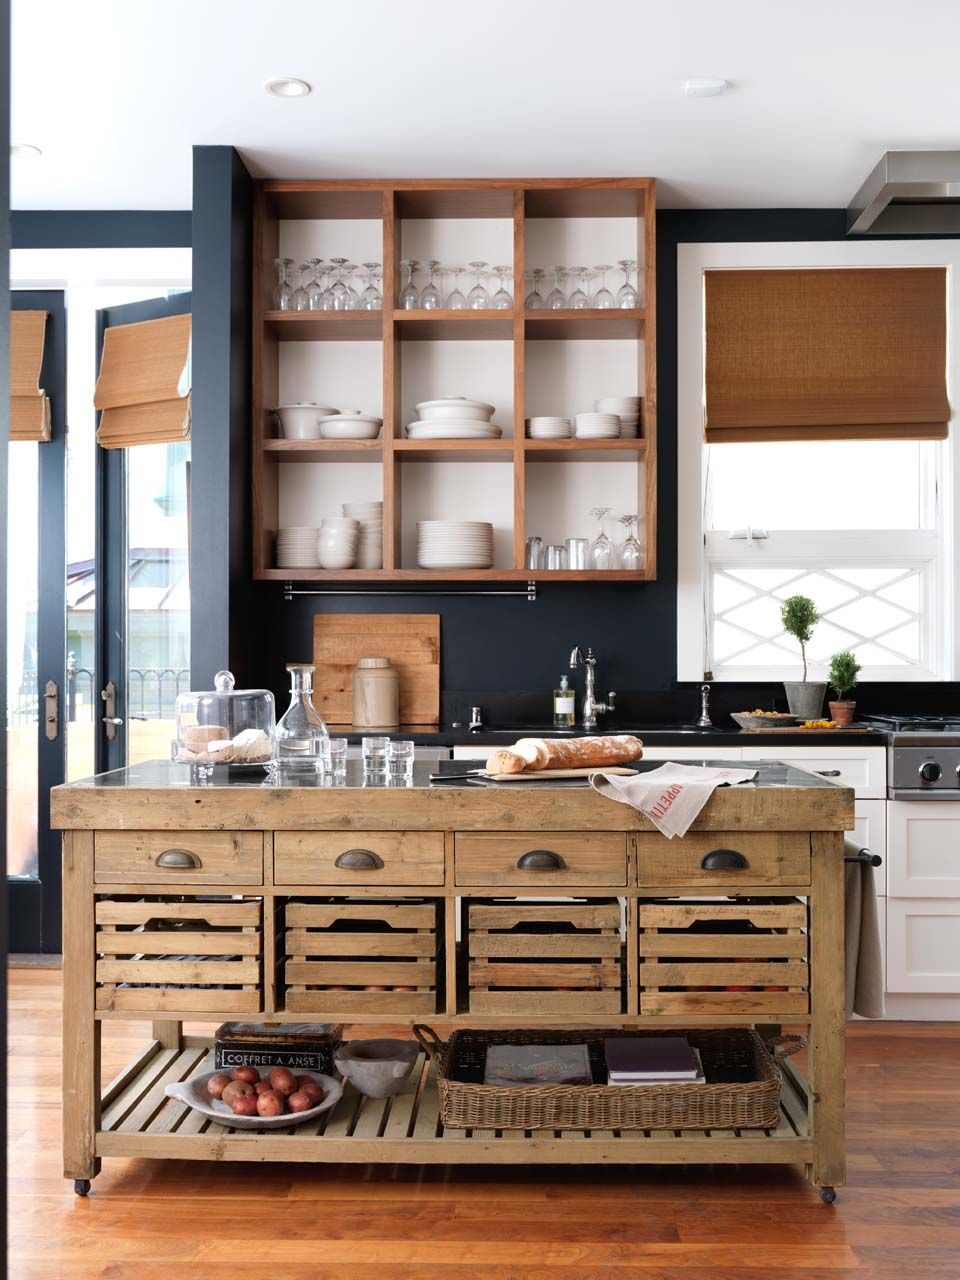 fabulous rustic kitchens. Rustic Kitchen Island With Open Shelving On Walls! How Fabulous - #Country #Style #Kitchens.....I Need This Island...now. Kitchens